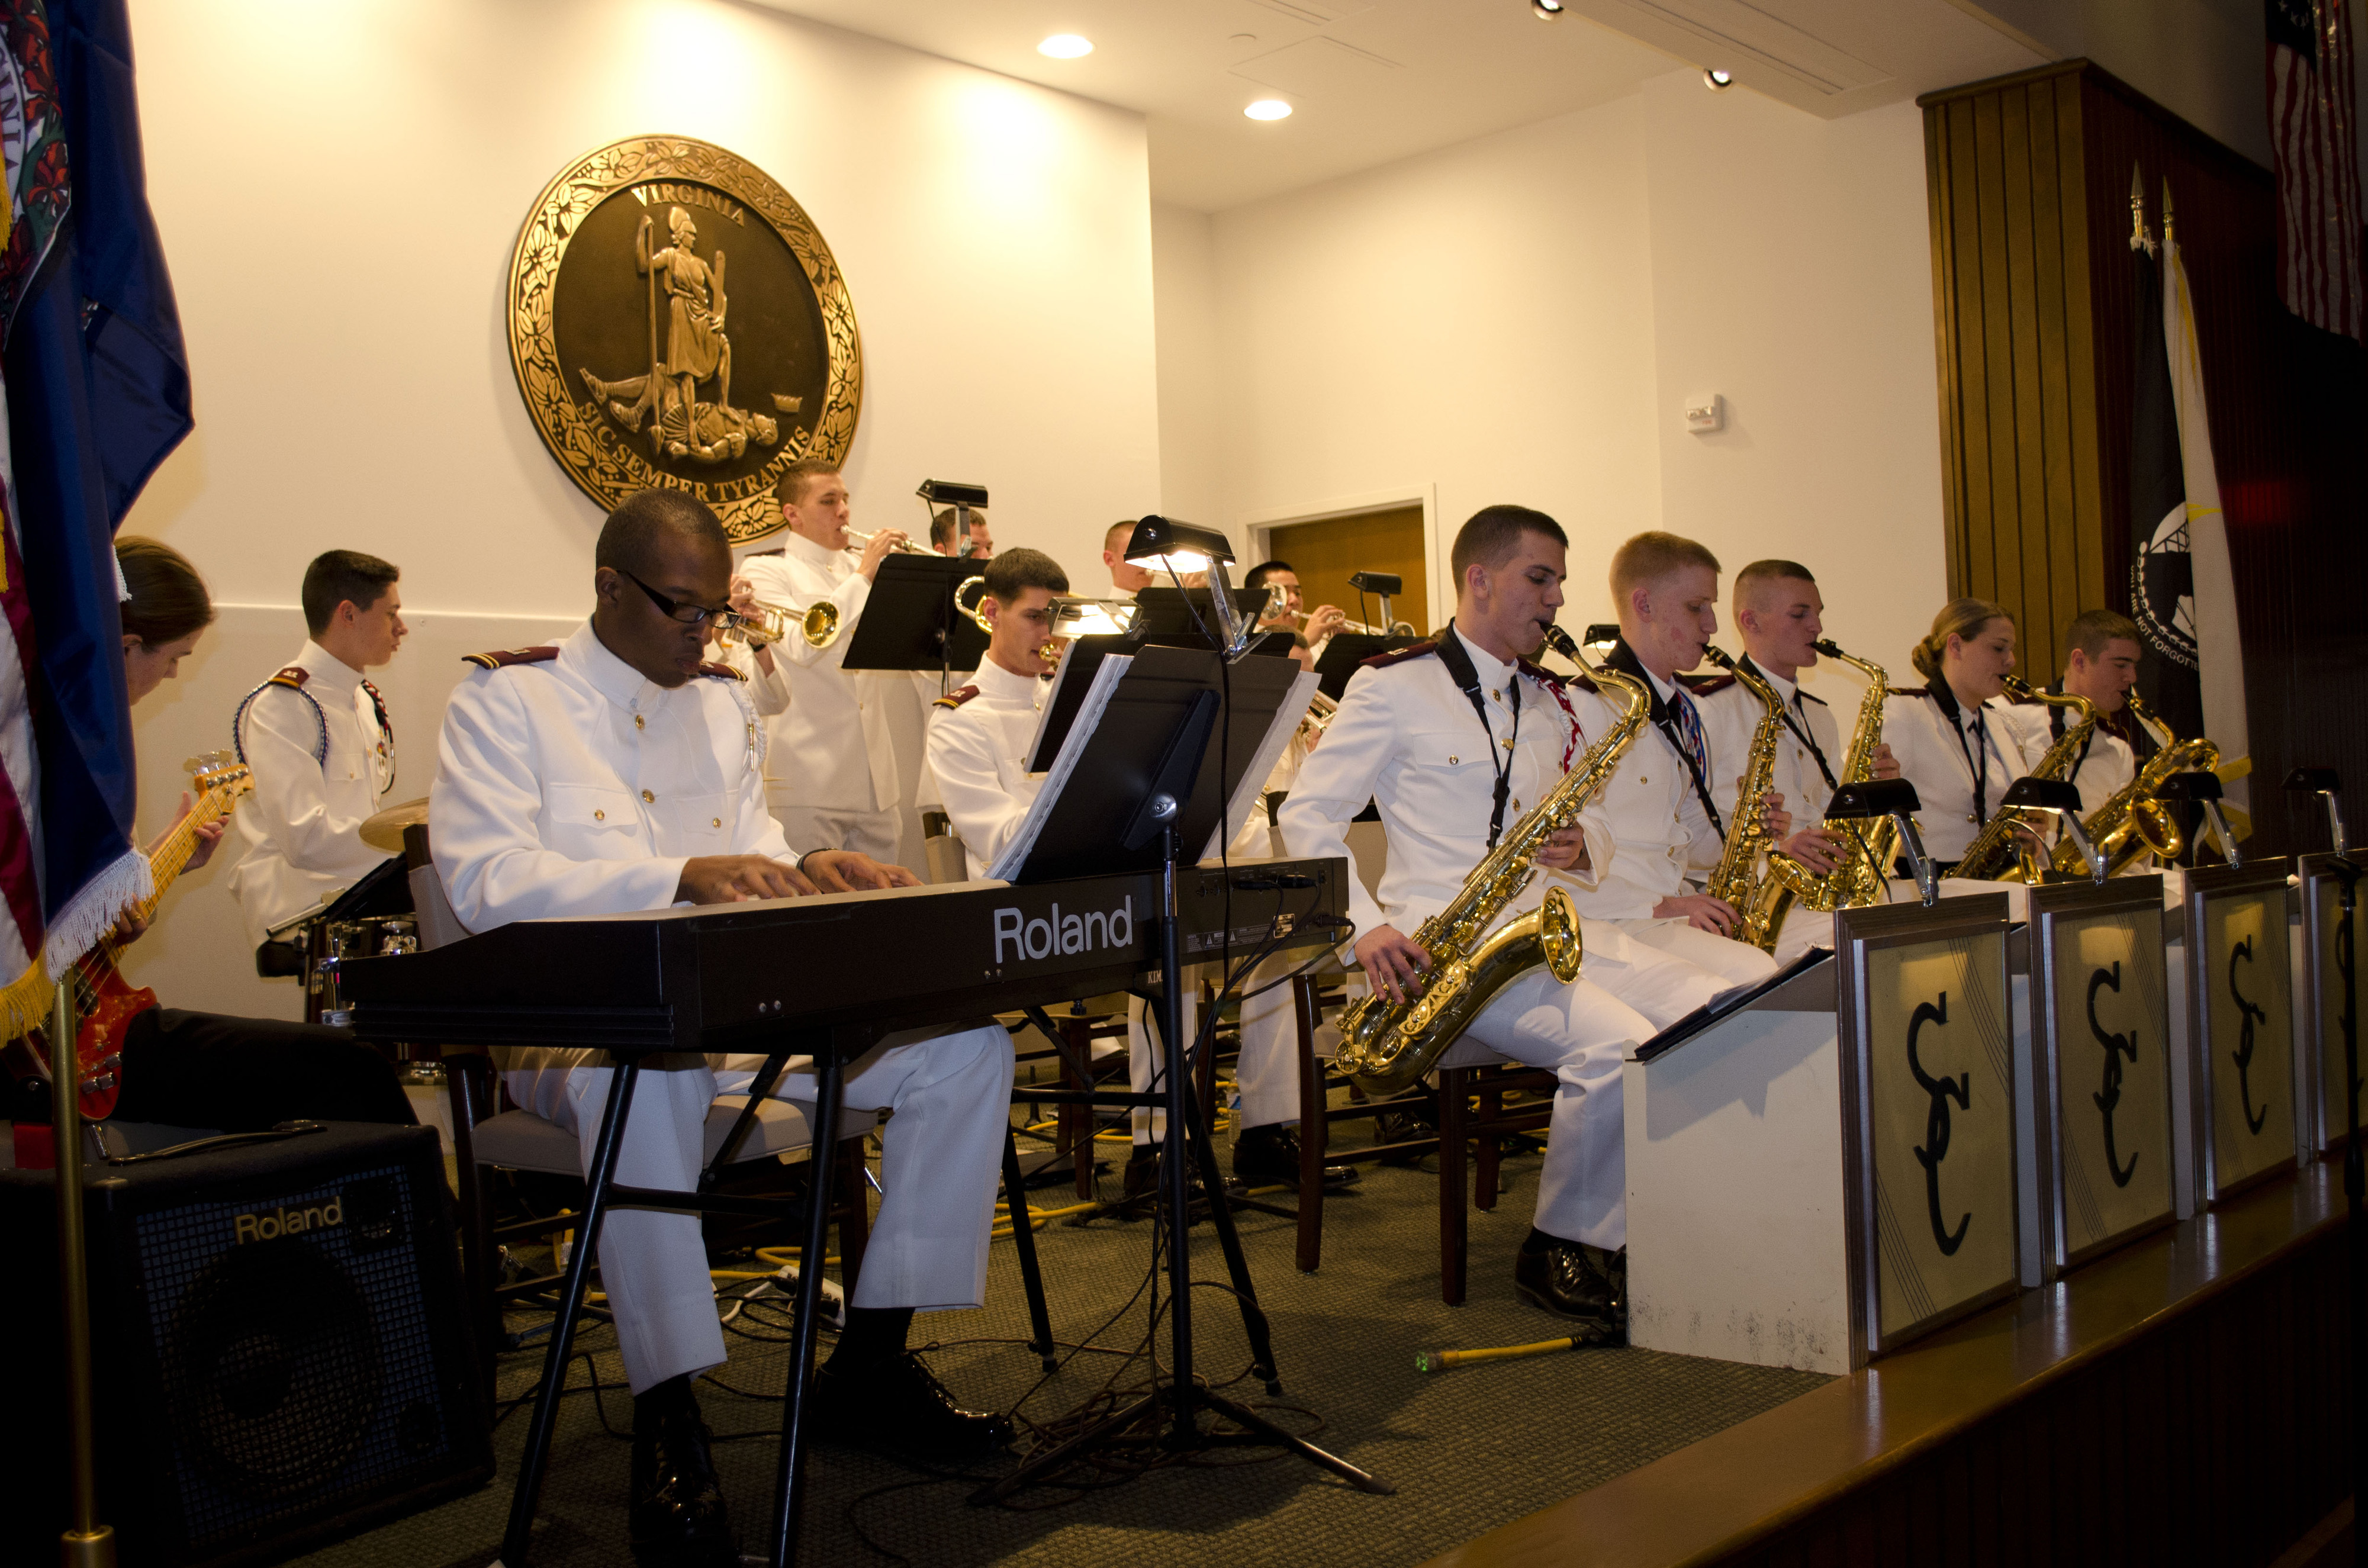 The Southern Colonels, the Virginia Tech Corps of Cadets jazz ensemble, seen performing at a recent event.